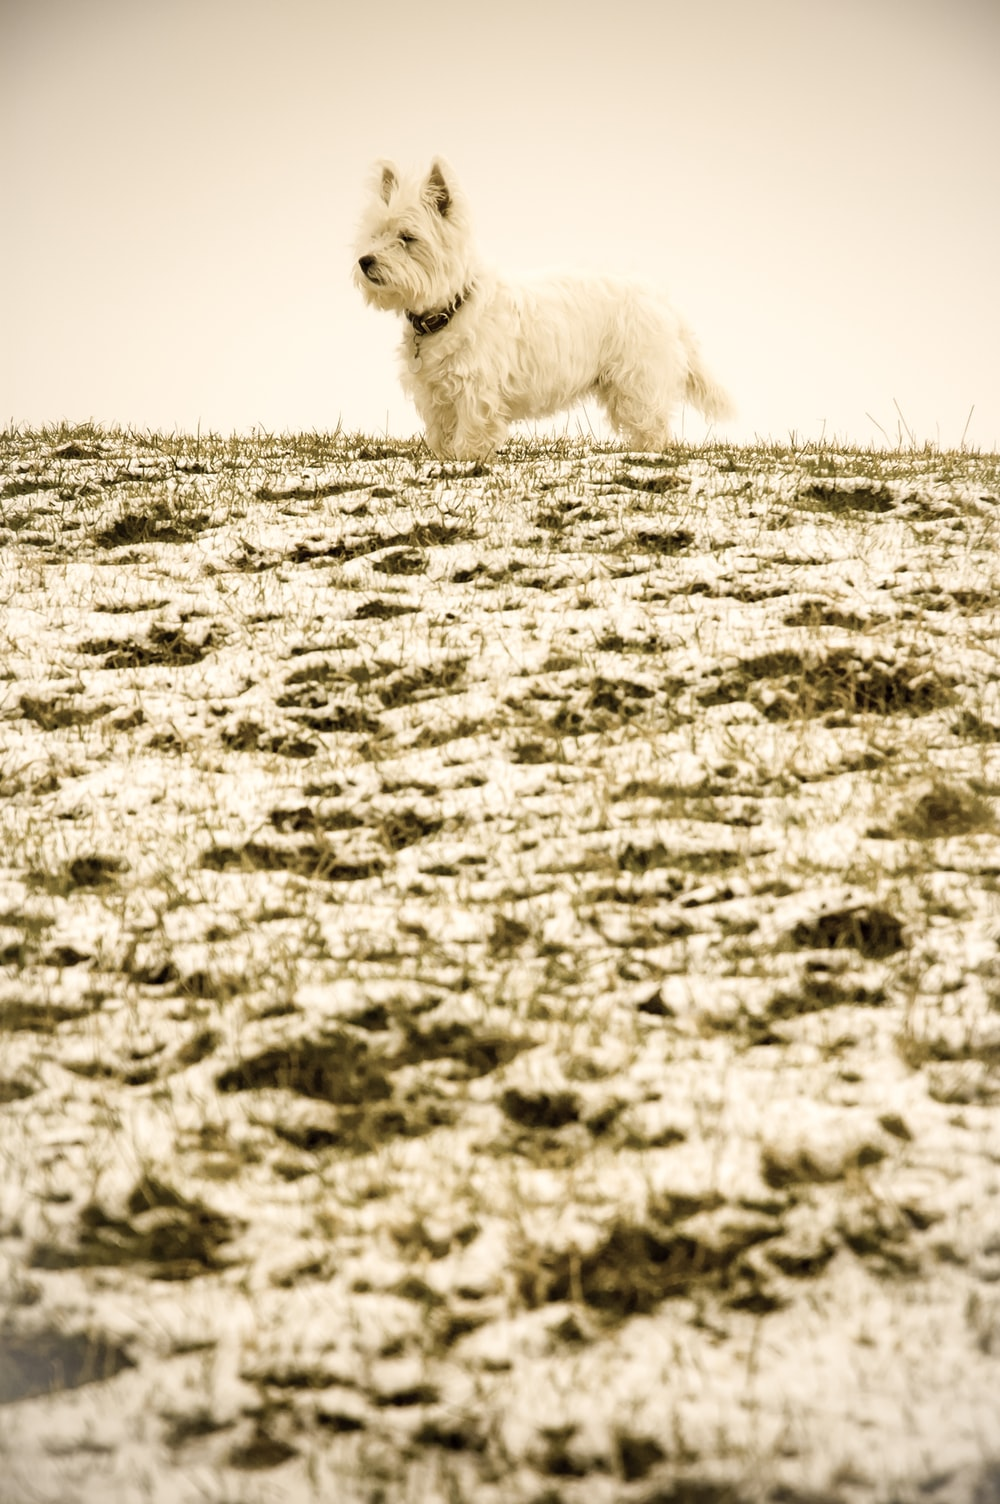 white dog standing on snow-covered ground